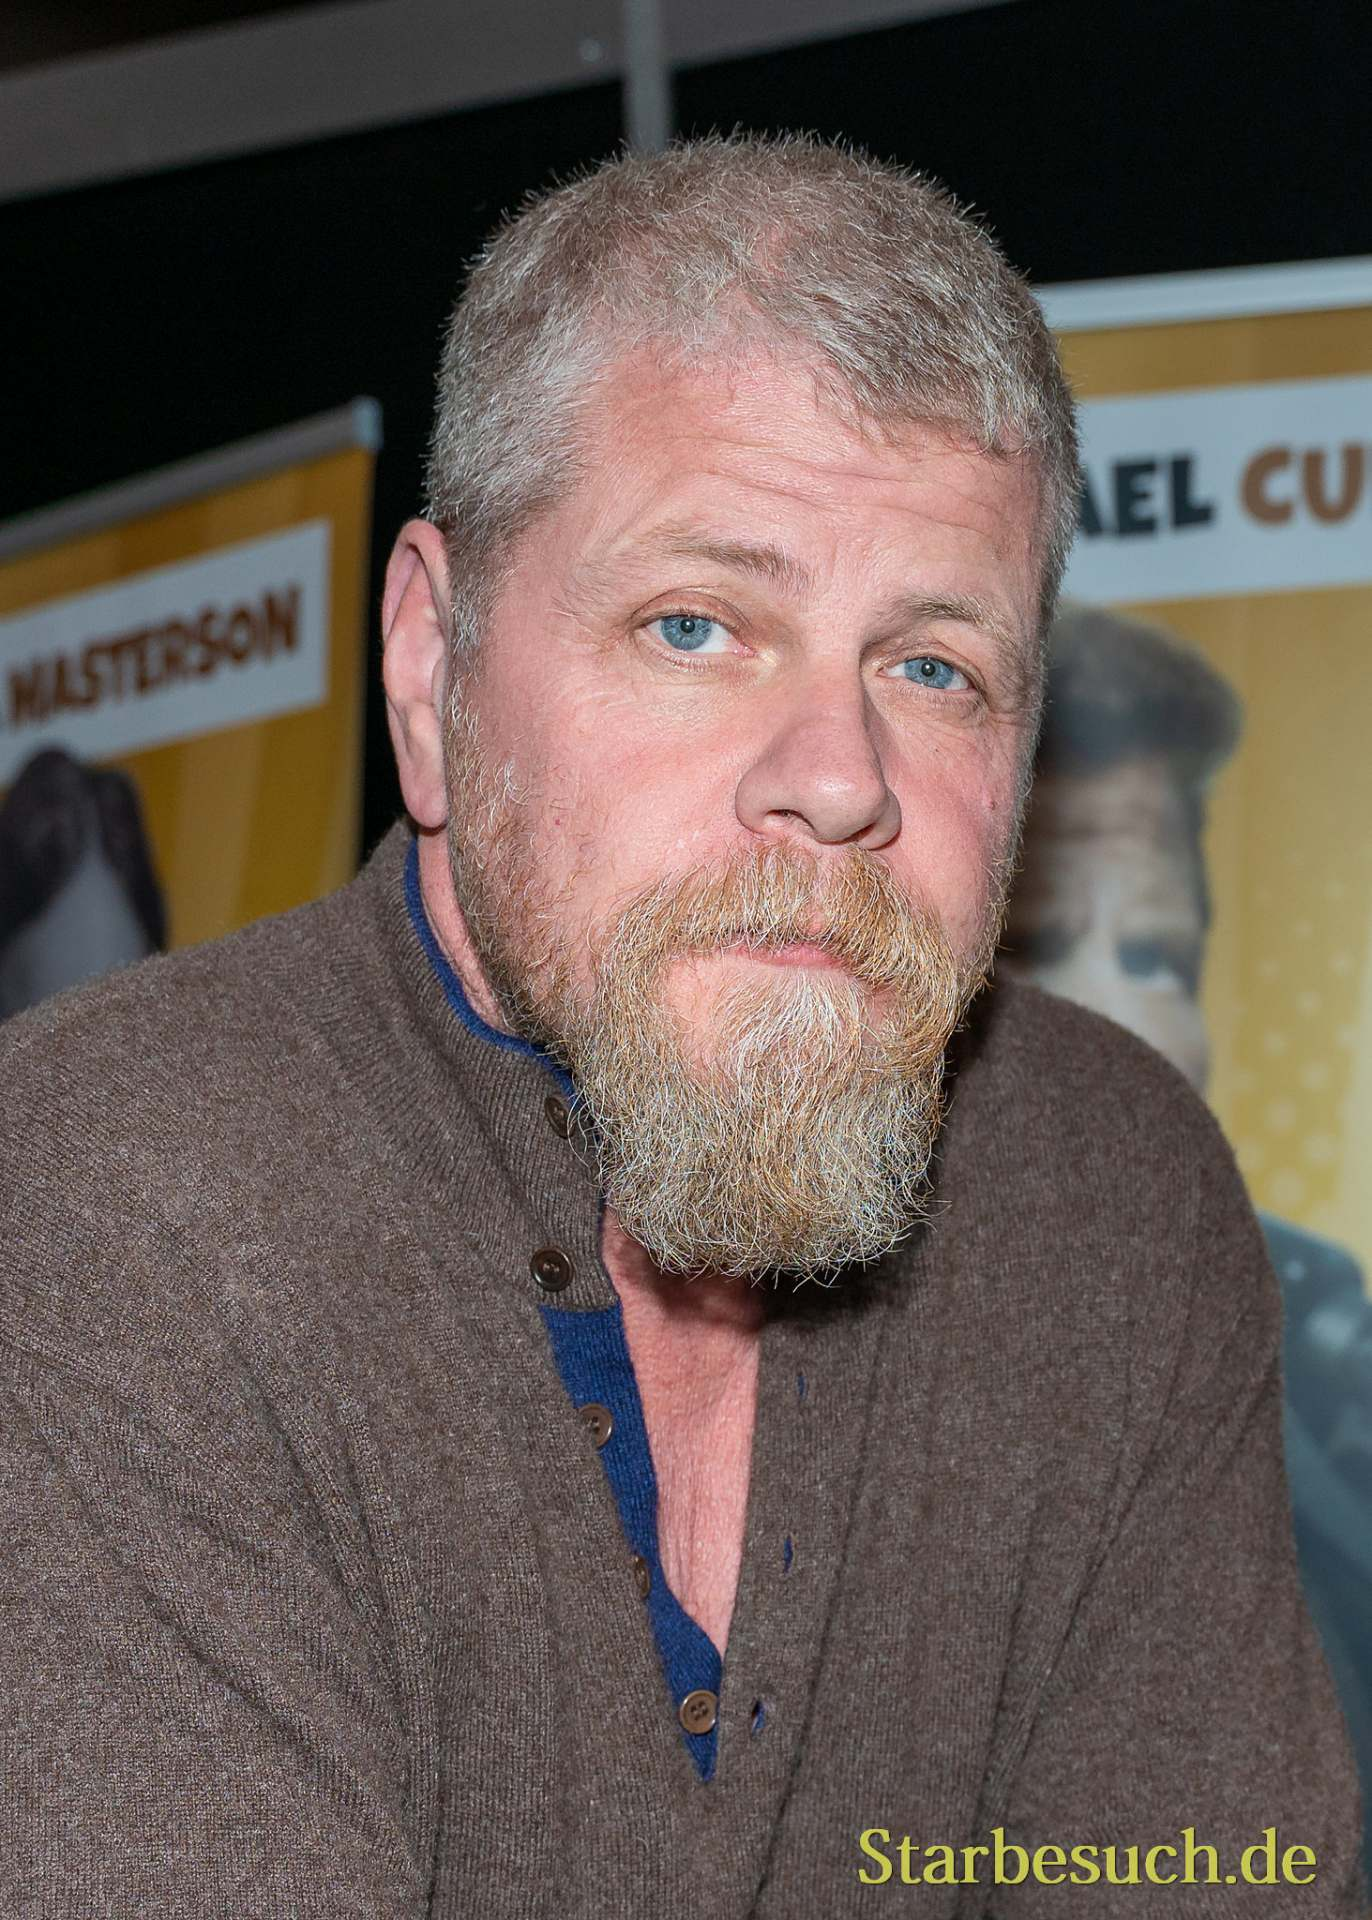 DORTMUND, GERMANY - December 8th 2019: Michael Cudlitz at German Comic Con Dortmund